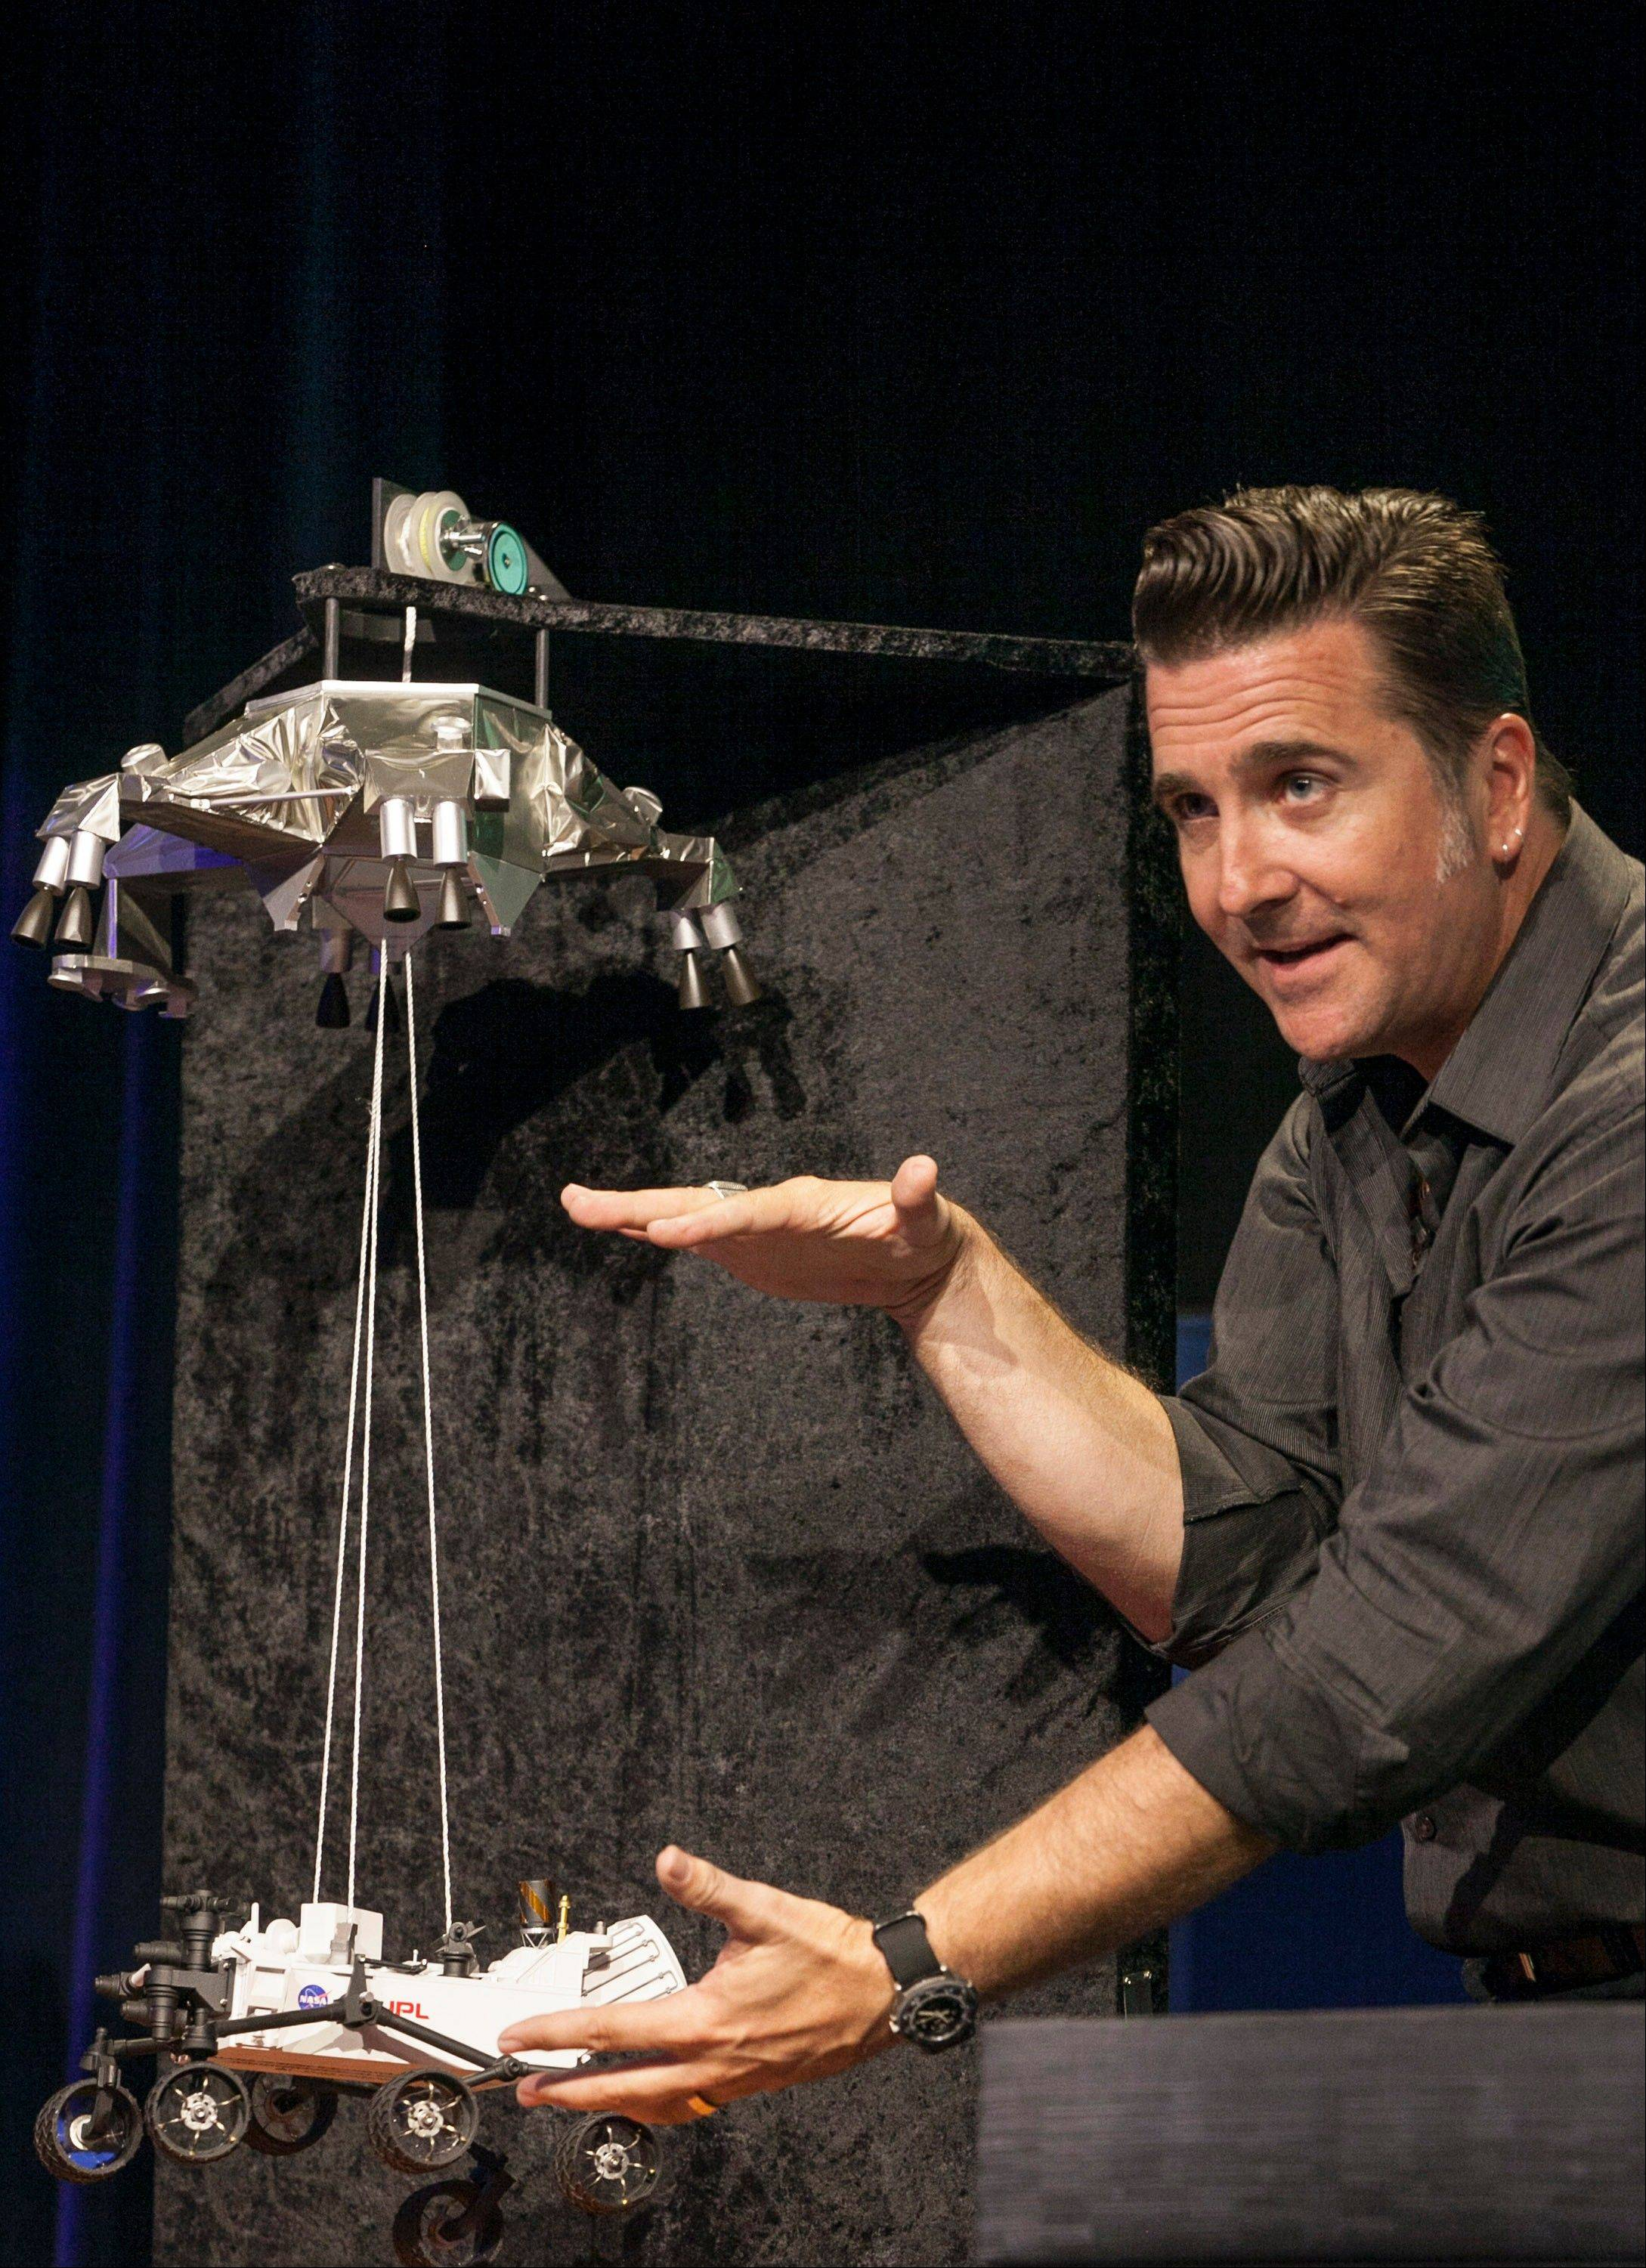 Adam Steltzner, Mars Science Laboratory's entry, descent and landing phase leader at JPL uses a scale model to explains the Curiosity rover's Entry, Descent, and Landing (EDL) during the Mission Engineering Overview news briefing at NASA's Jet Propulsion Laboratory in Pasadena, Calif. If you're planning to tune in when Curiosity lands on Mars, you'll need to know the lingo.